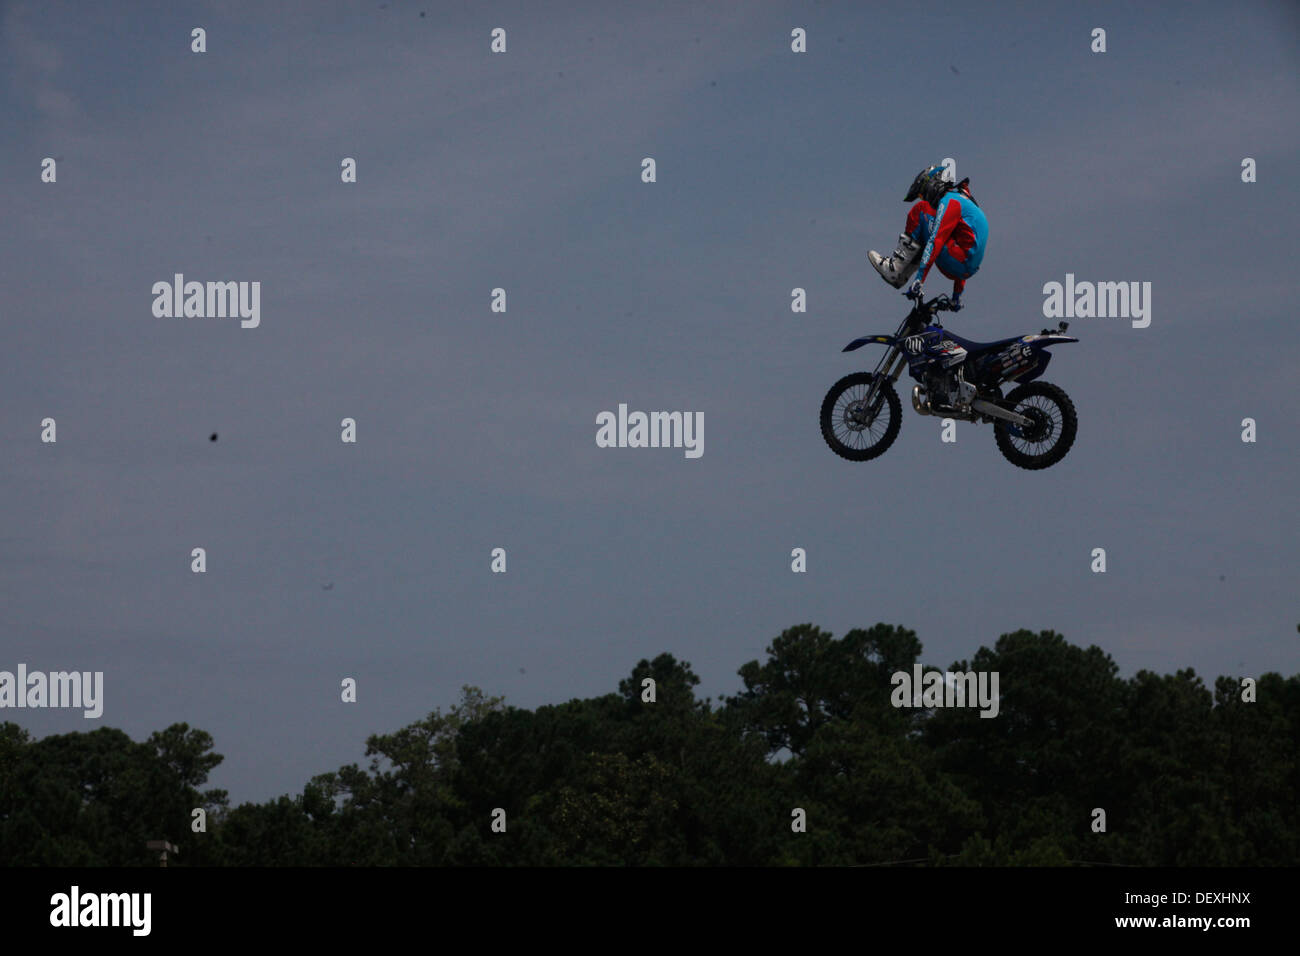 Jeff Griffin, freestyle motocross rider, performs a sterilizer trick for fans during an event hosted at the Marine Corps Exchange aboard Marine Corps Base Camp Lejeune, Sept. 13. More than 500 spectators gathered for the motocross event. - Stock Image